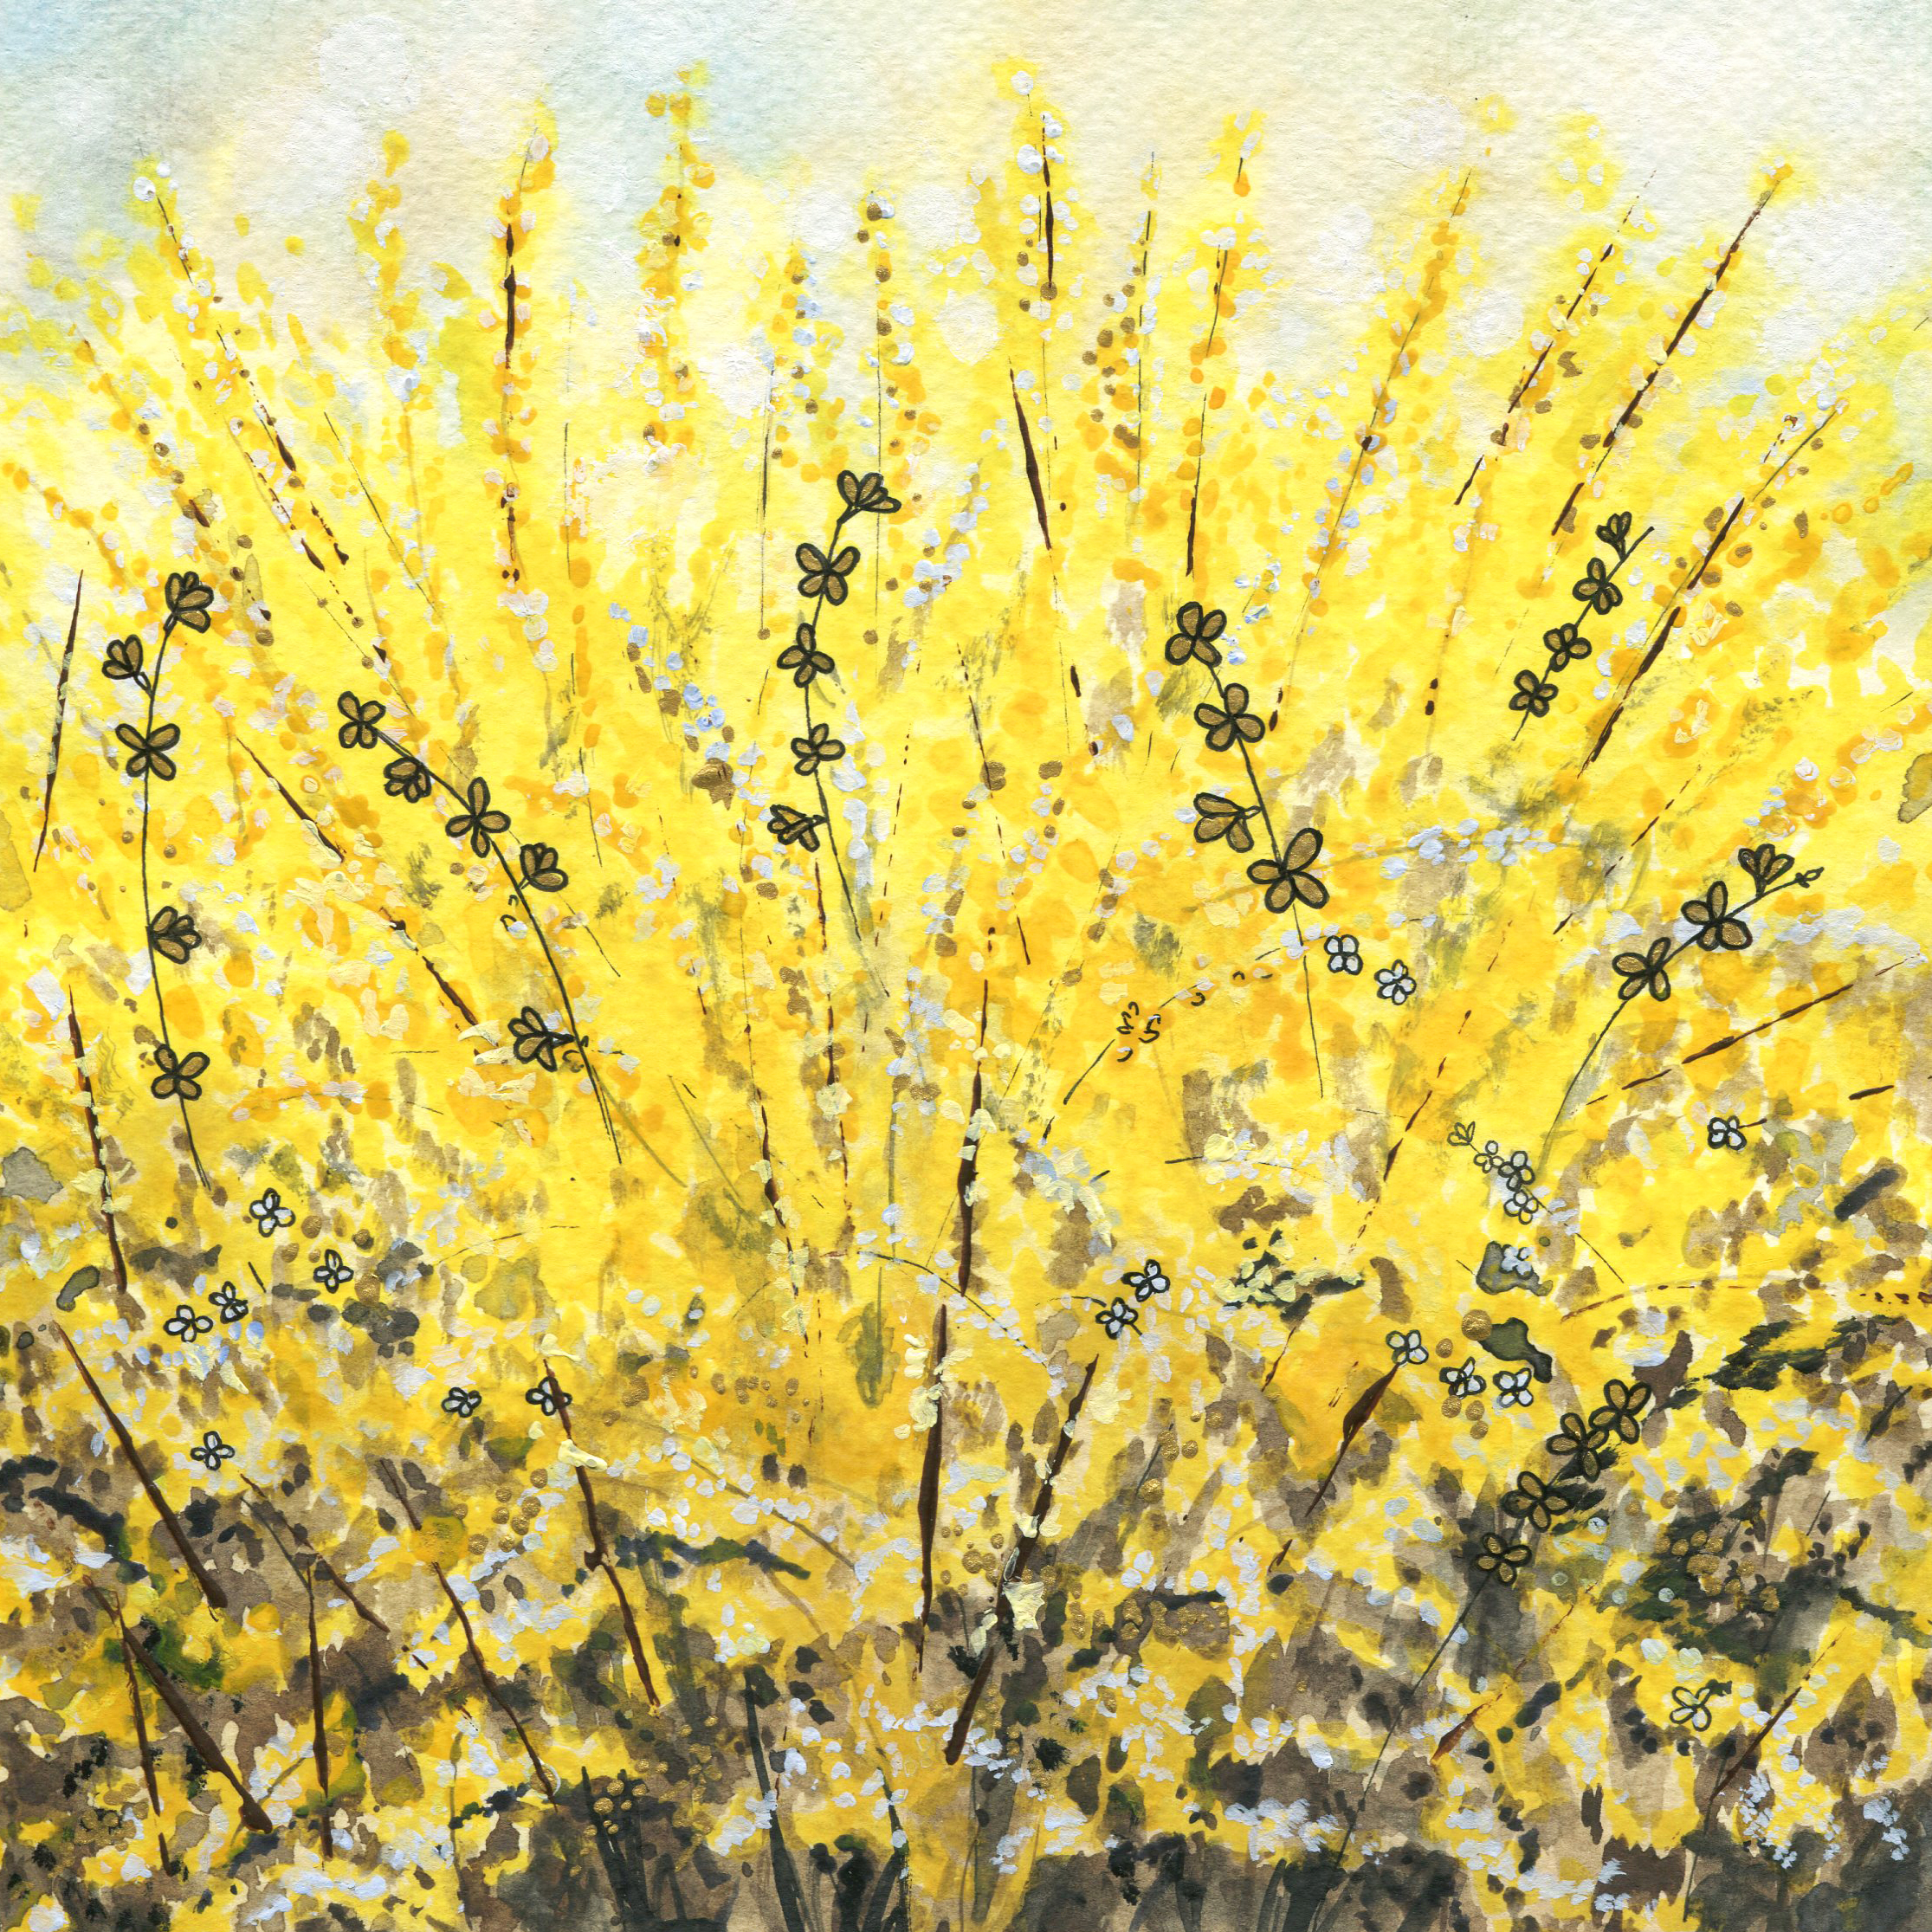 ORIGINAL WATERCOLOR, ACRYLIC AND PEN PAINTING 8X8 Inches, Forsythia: $250  (Message to claim)